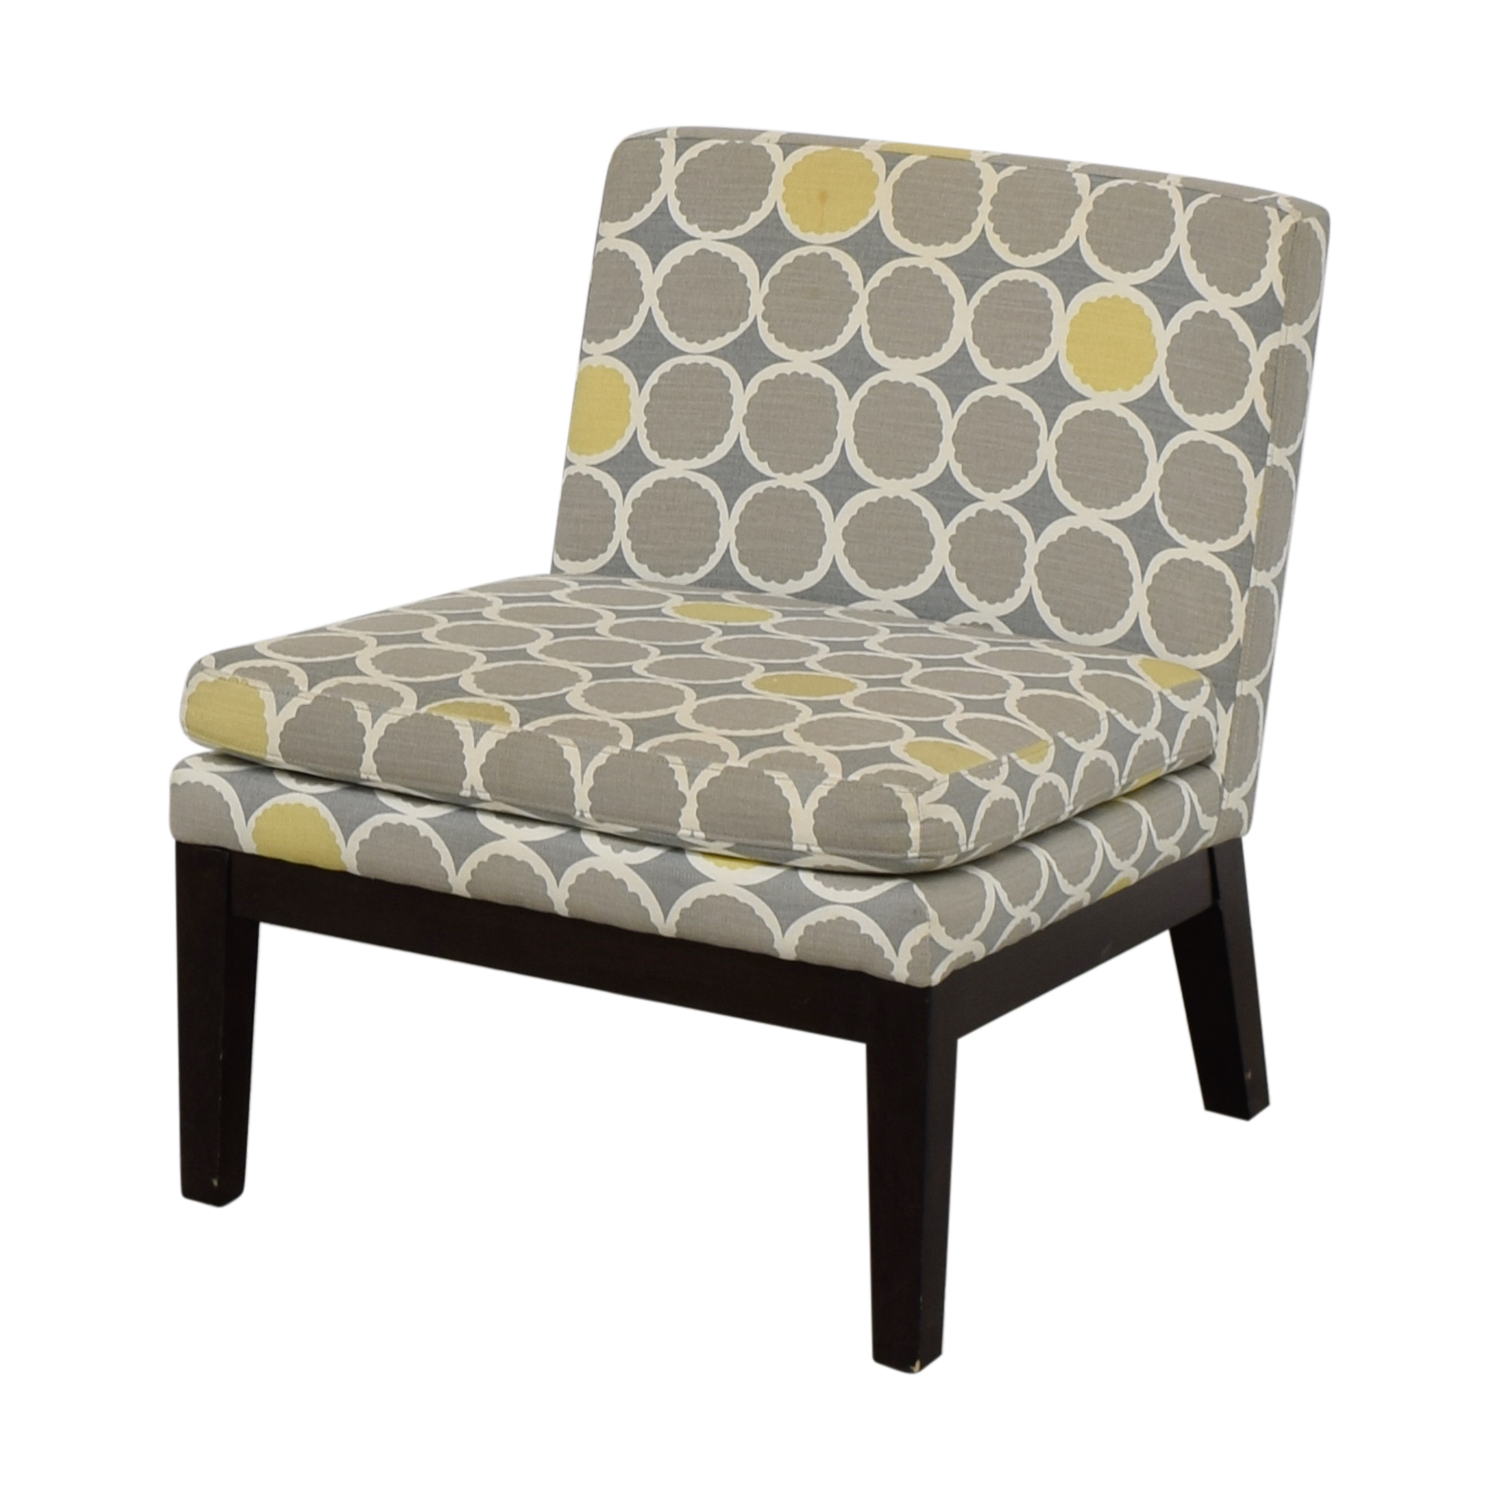 72 Off West Elm West Elm Grey Yellow And White Accent